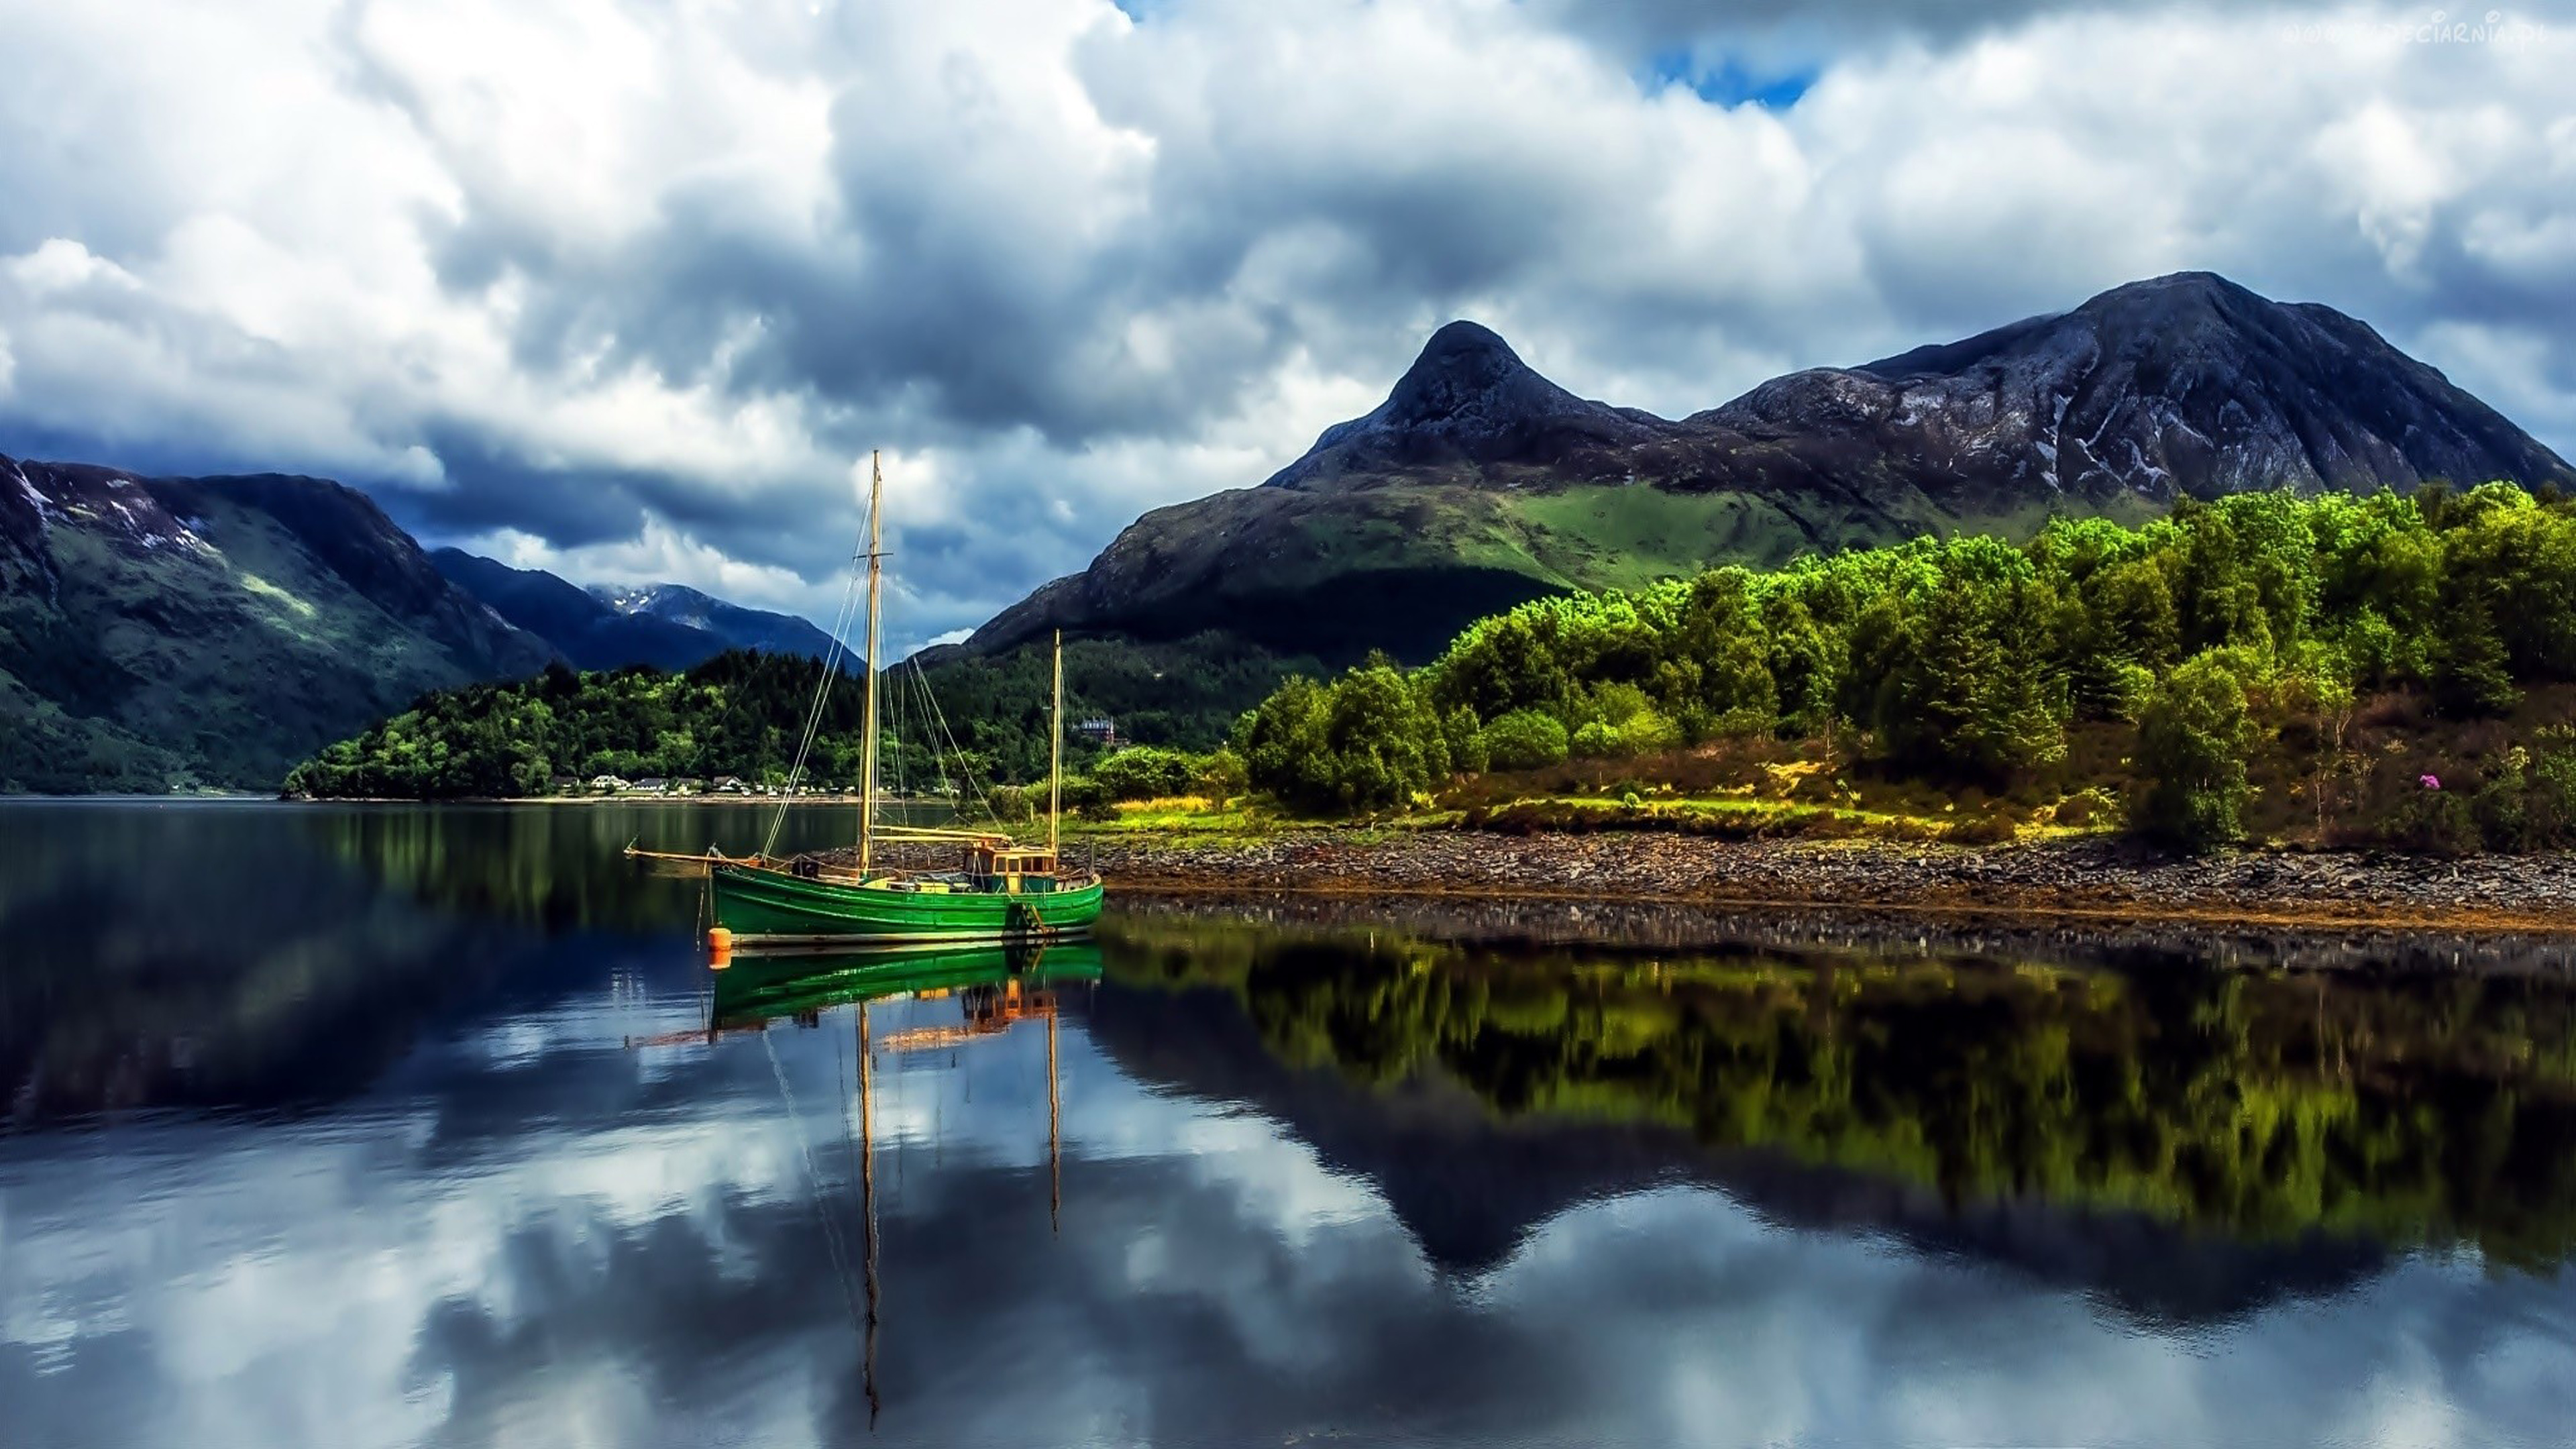 Free Fall Nature Wallpaper Nature Landscape Mountains Lake Green Boat With Sails